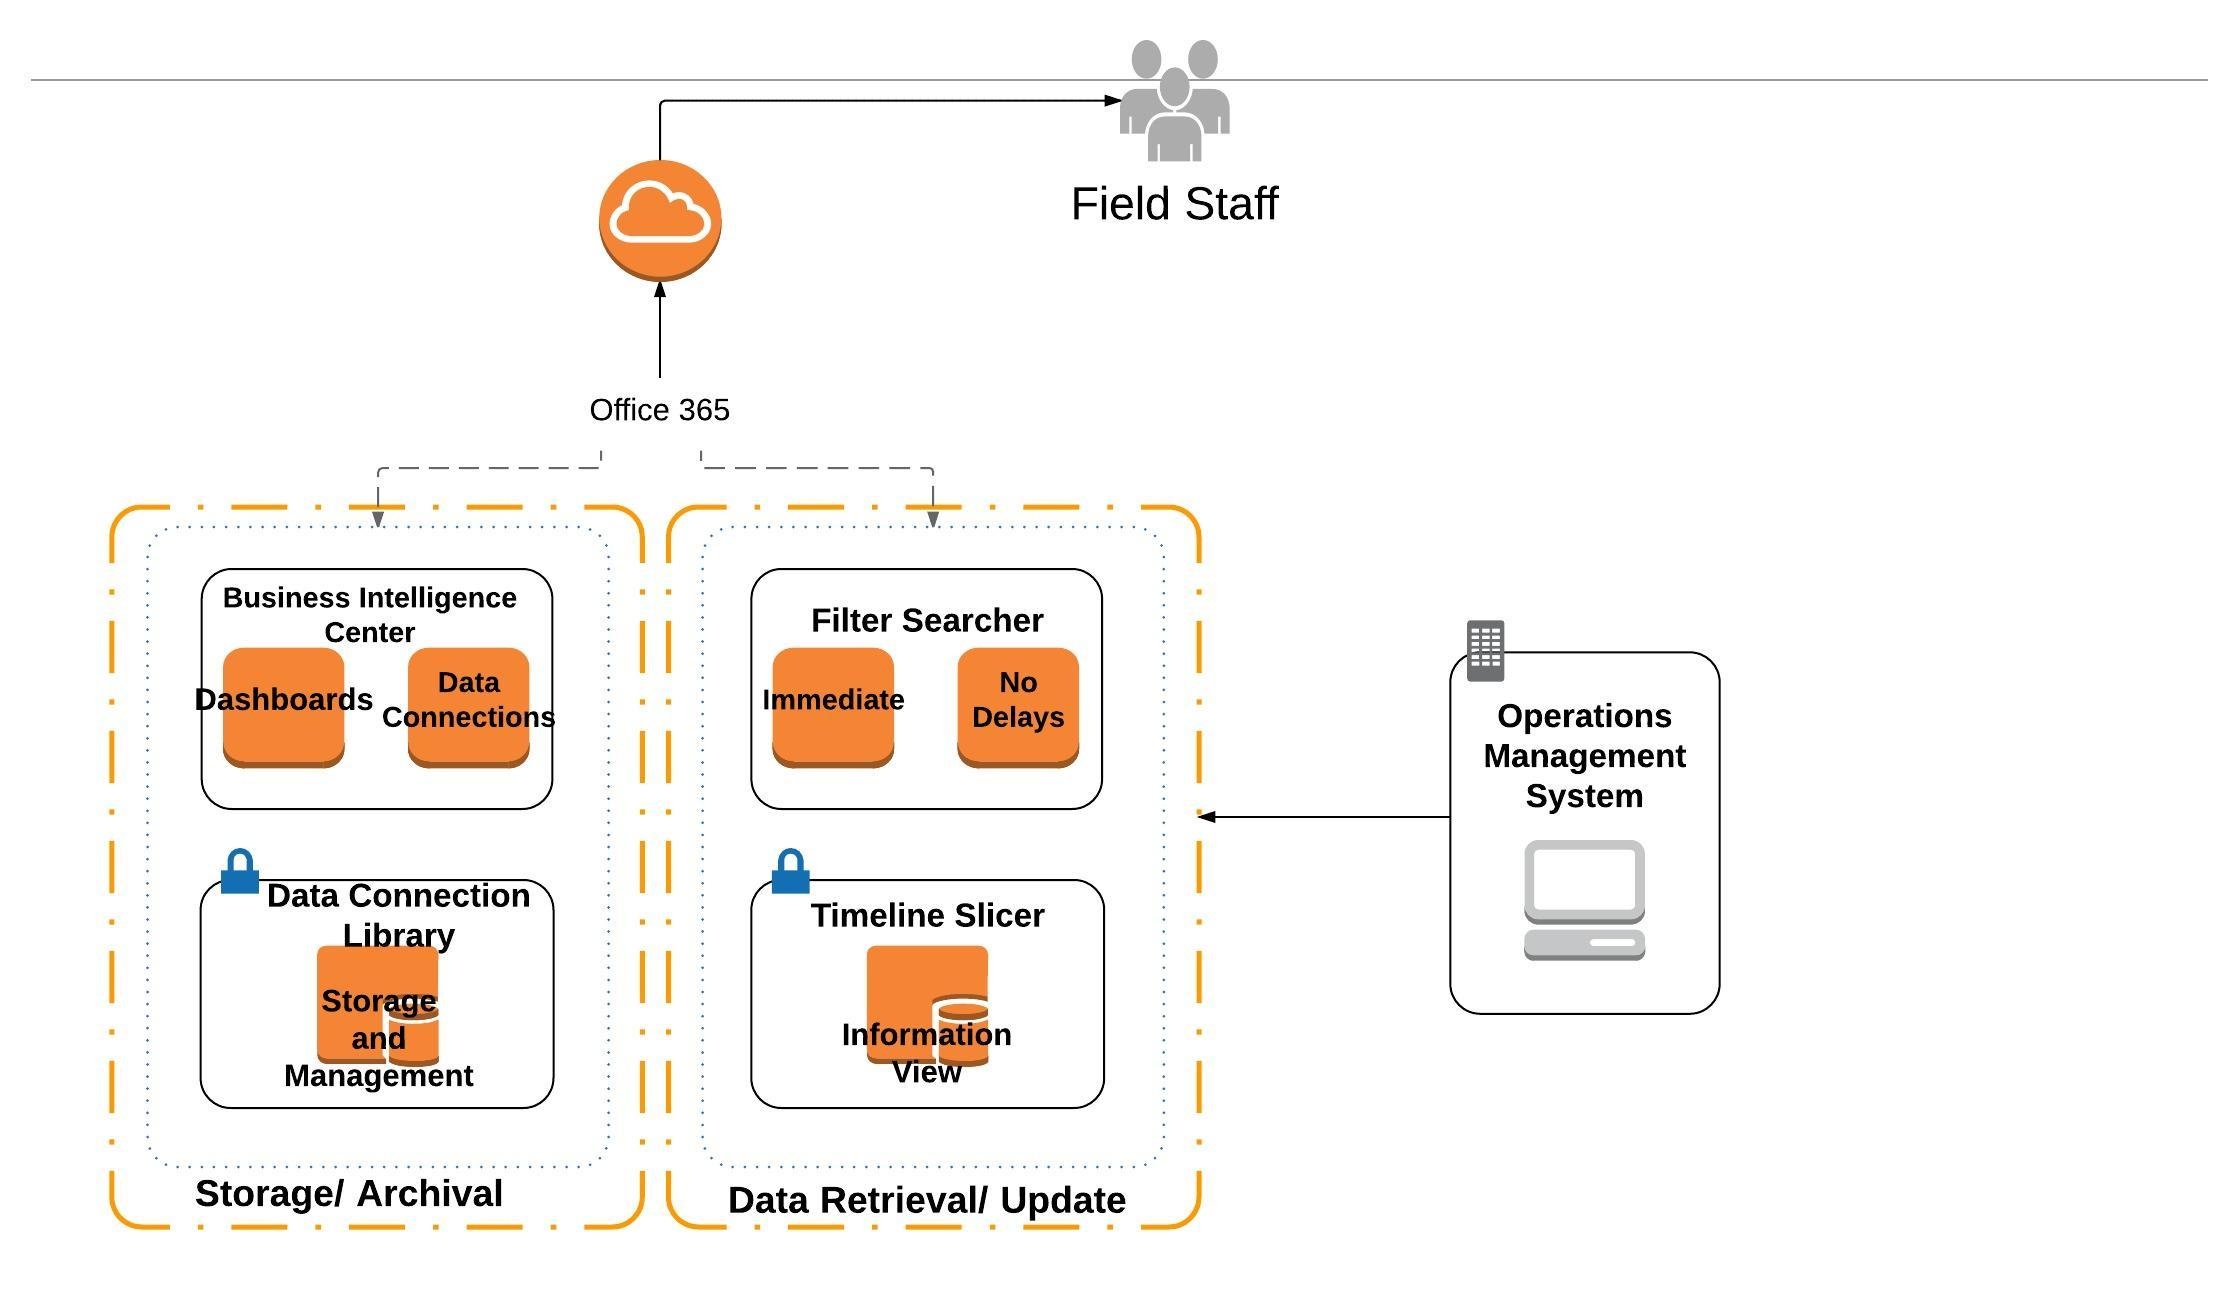 SharePoint Solution in Field Services - New Page (2)